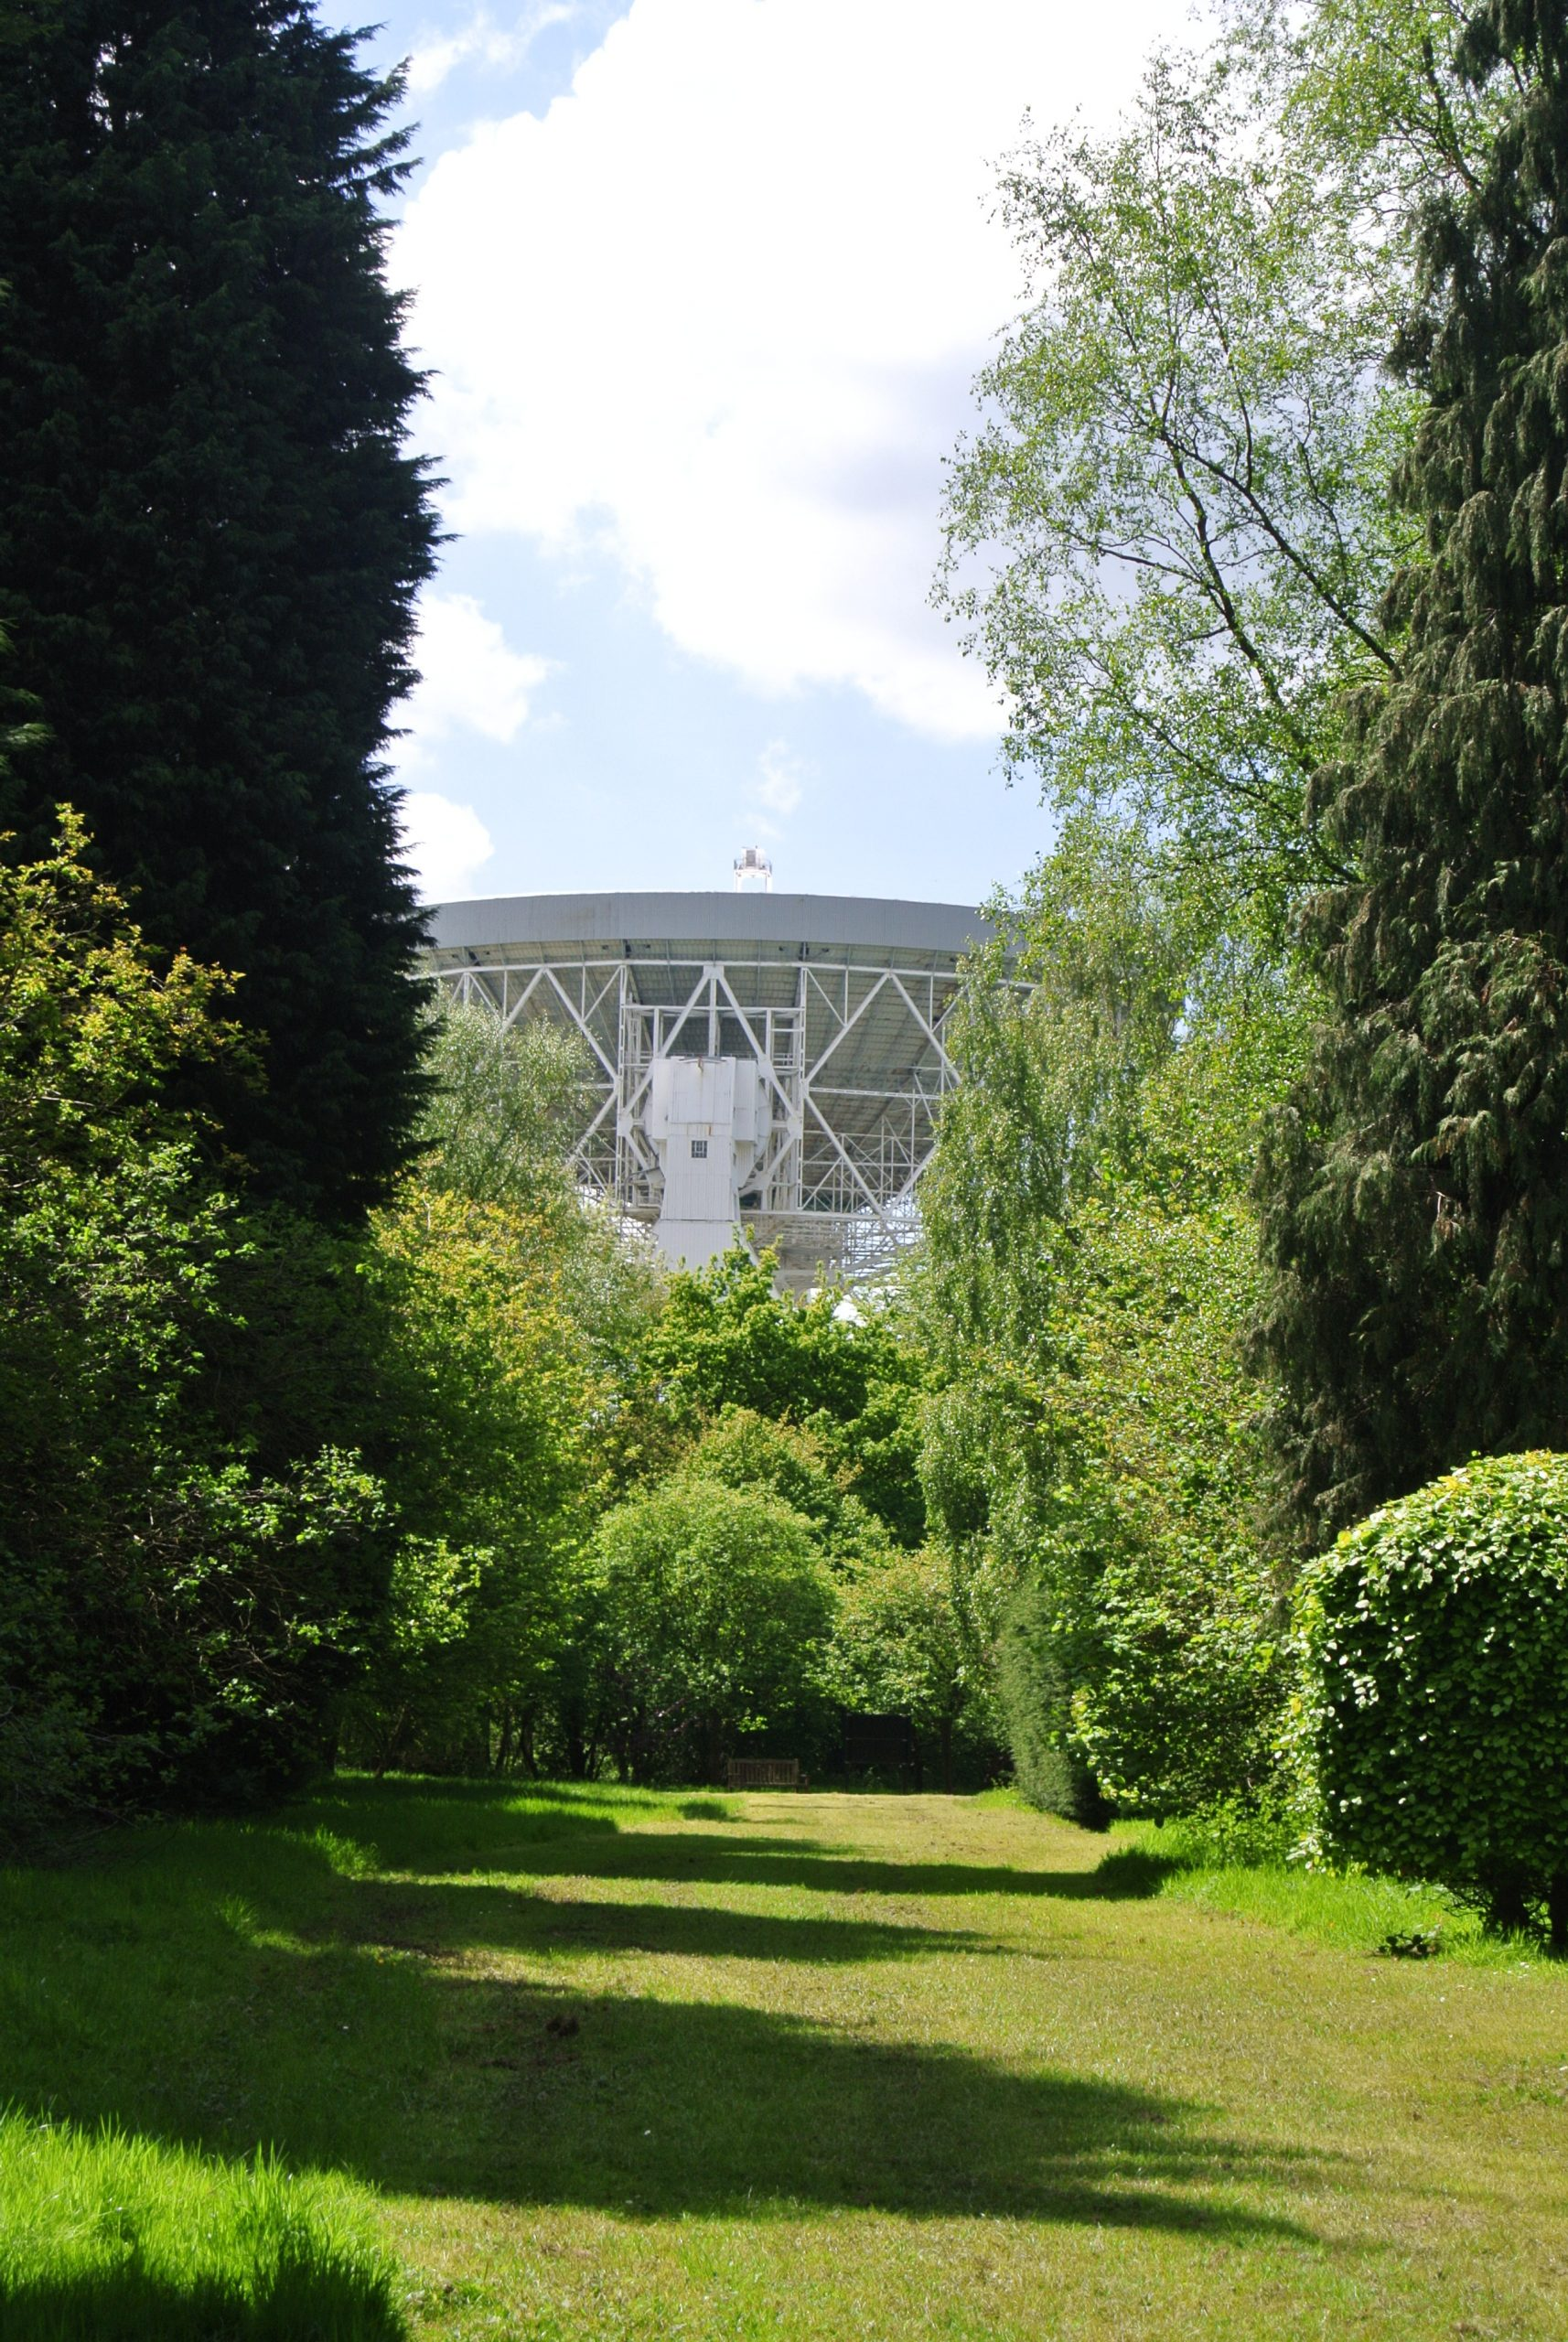 Jodrell Bank Observatory - photo by Juliamaud